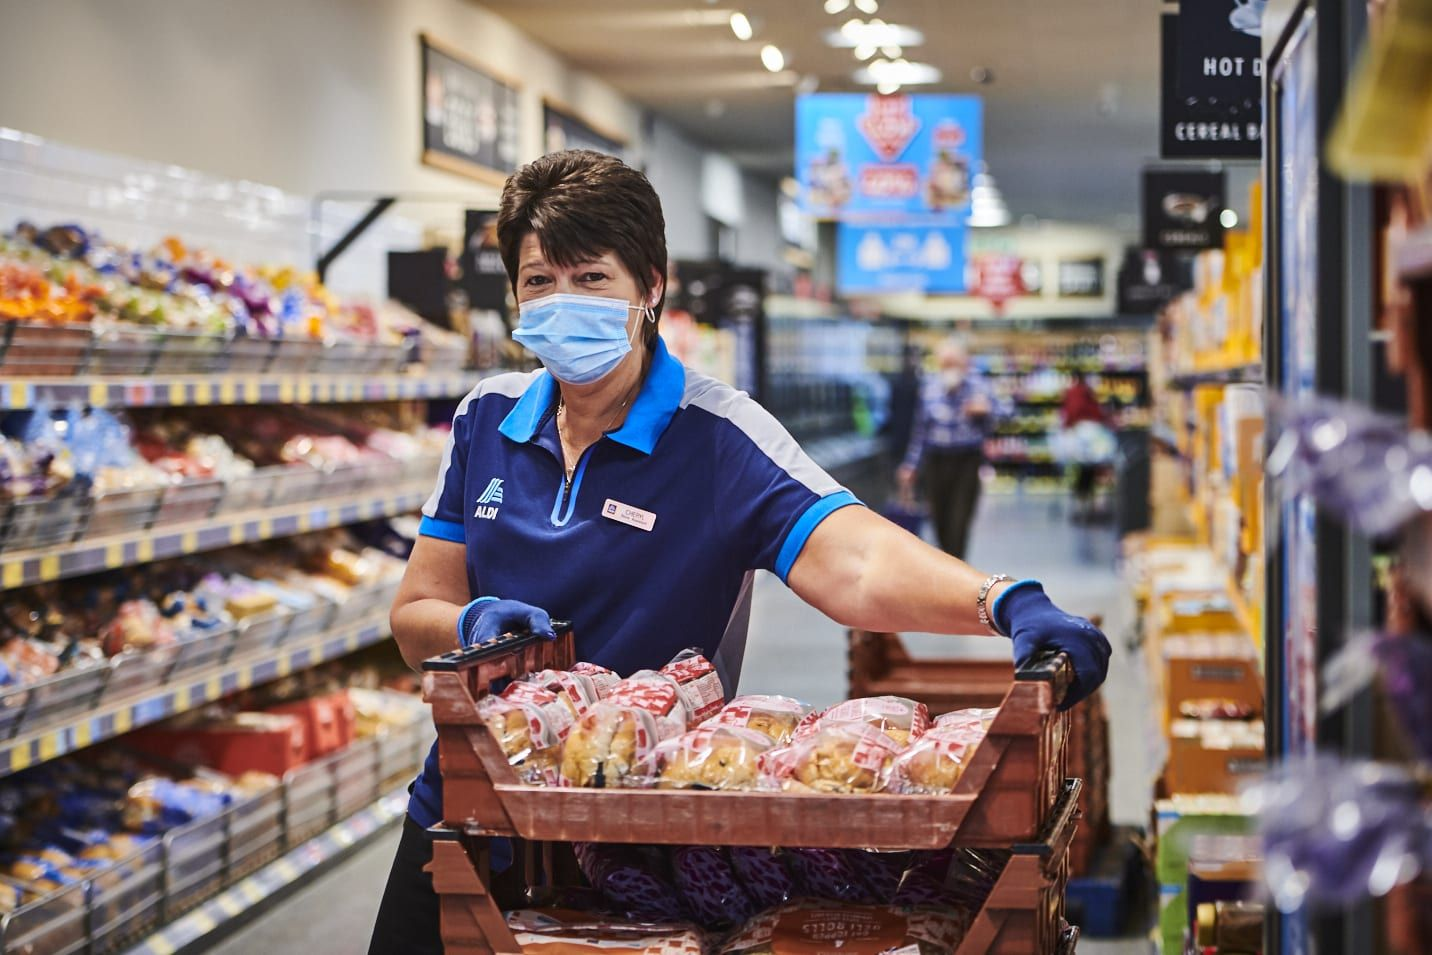 Aldi is hiring over 1,000 new Christmas staff - here's how to apply | Farming Life